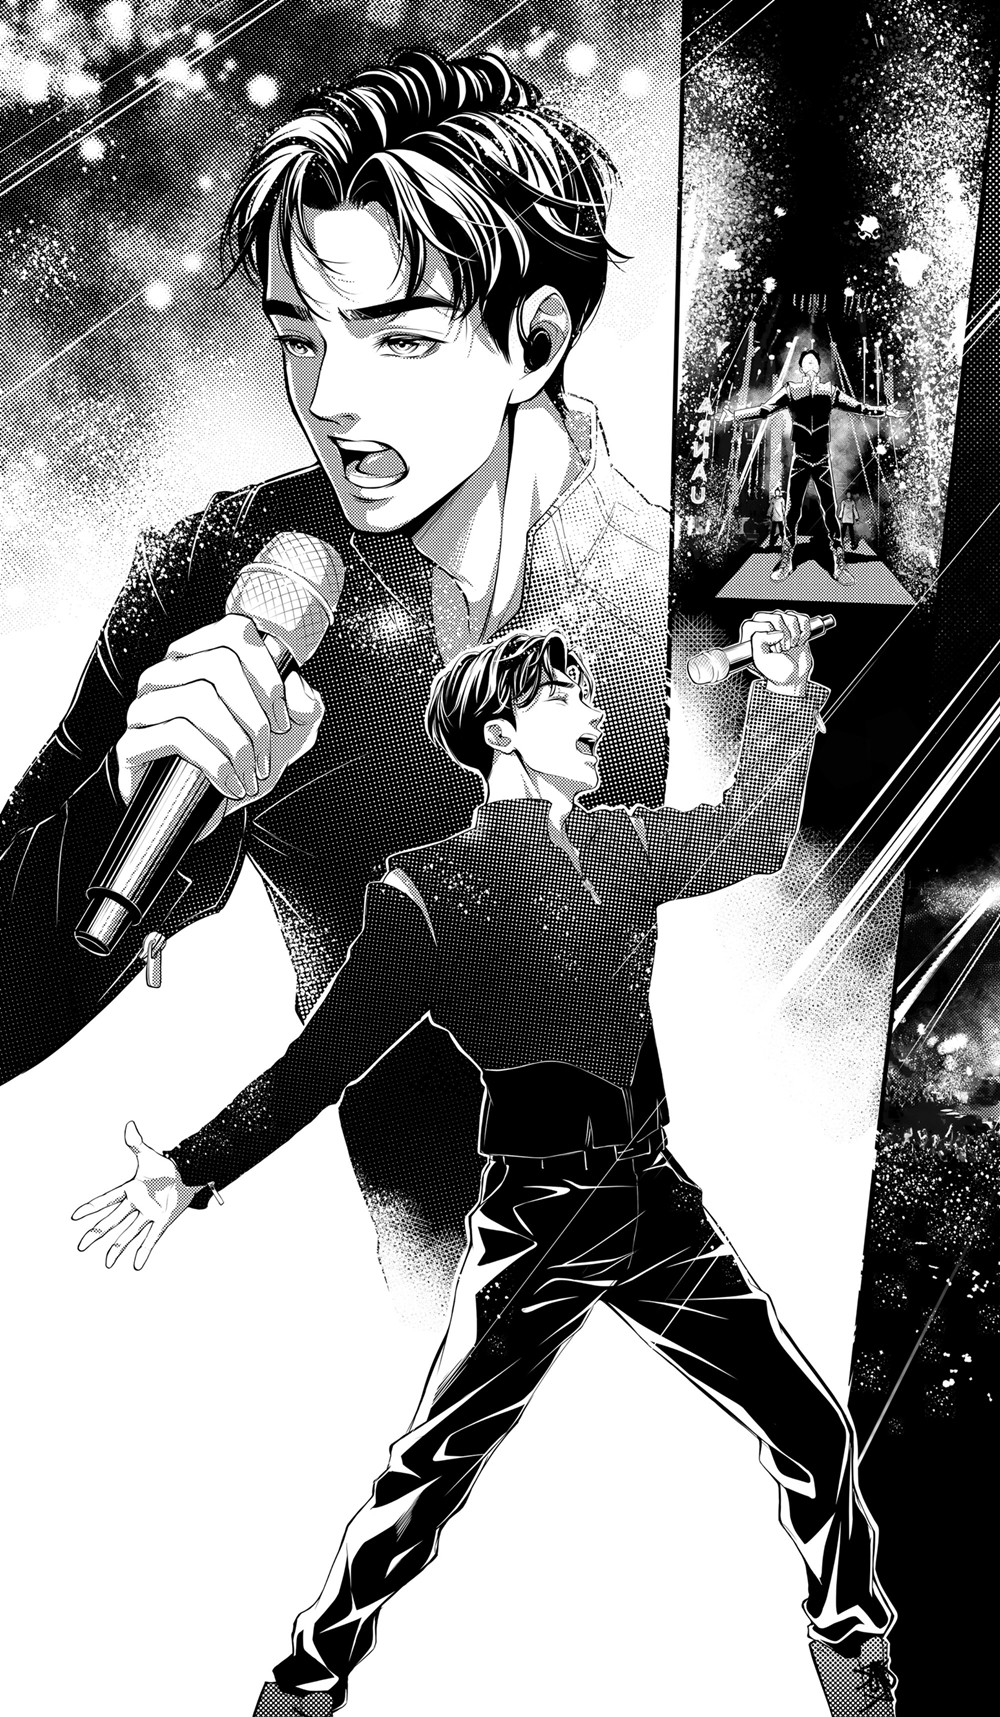 How did Dimash D'R'S Manga come to life